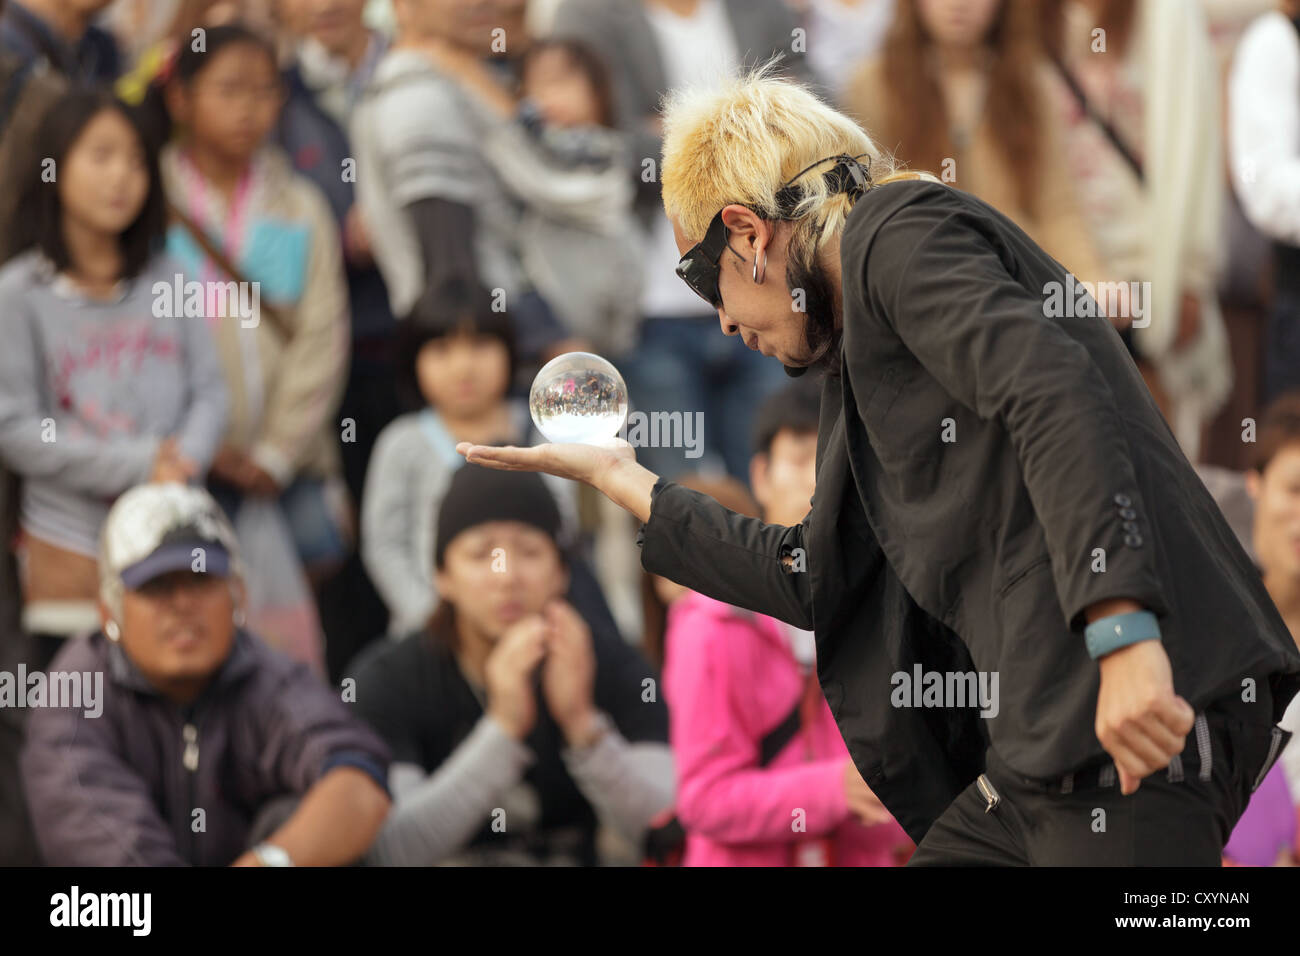 Street artist performing show in Osaka square, Japan - Stock Image